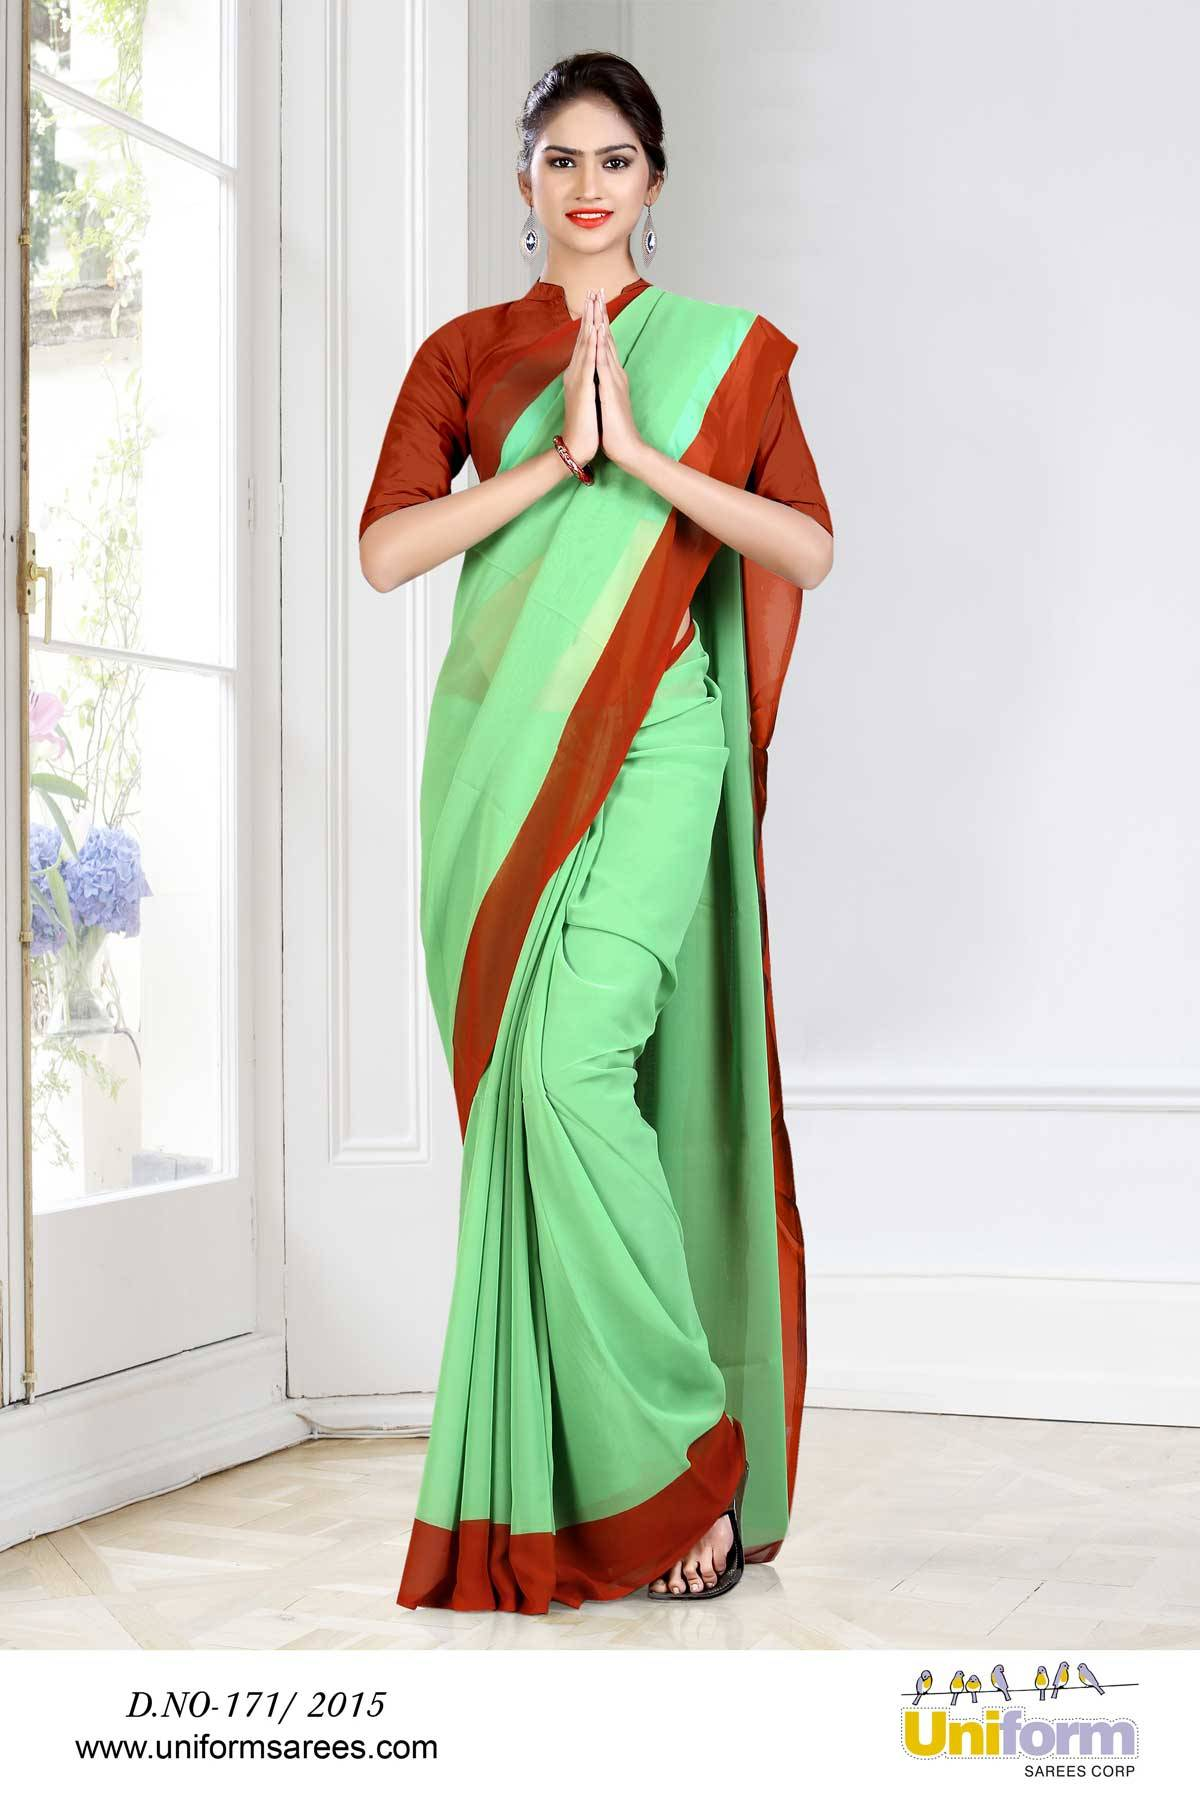 Uniform Sarees For Hospital Nurse | Uniform Design No 171/2015